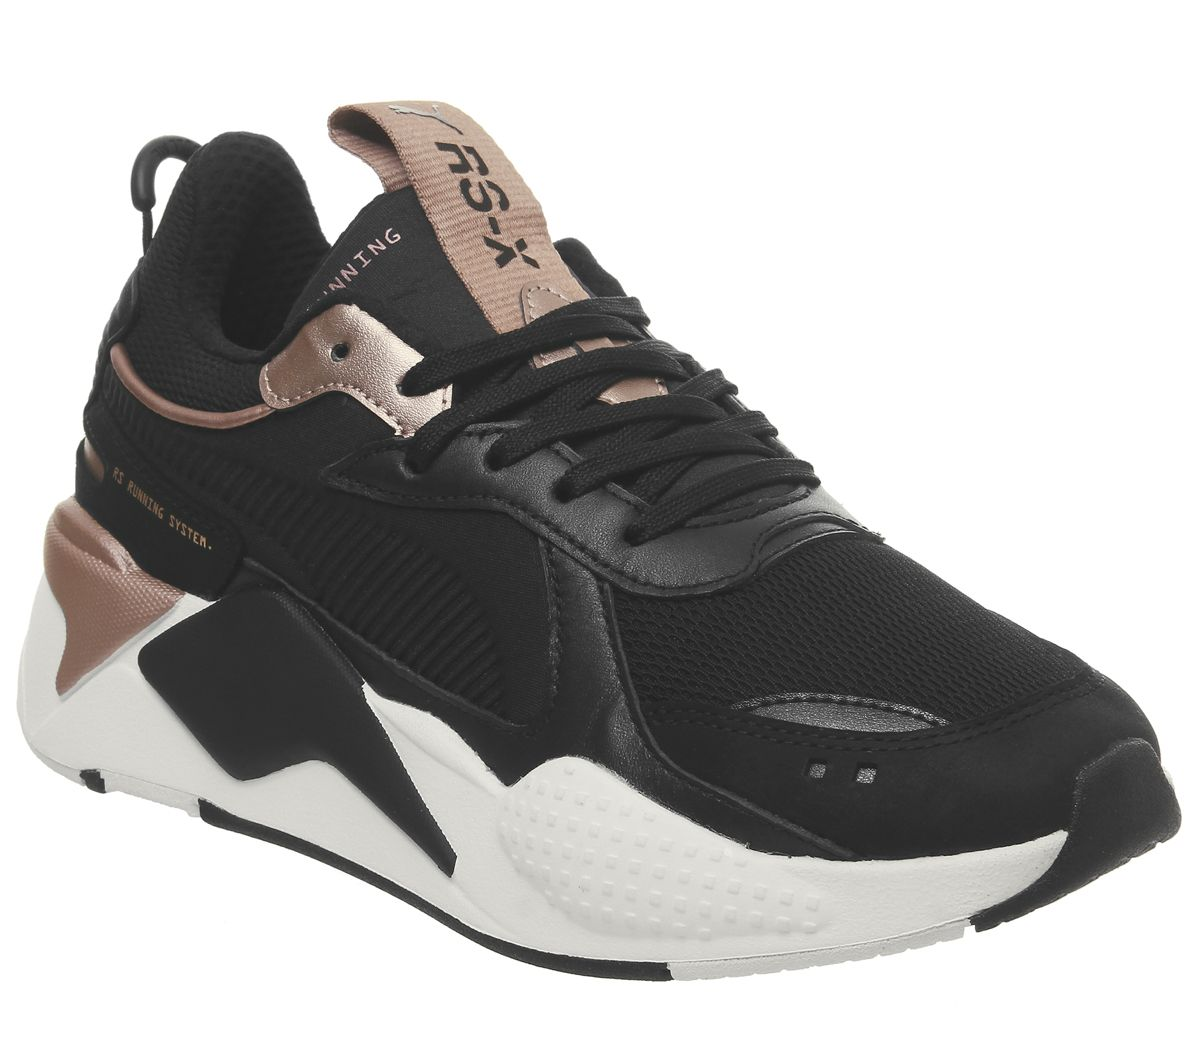 the best attitude 64bf0 cd05a Puma Rs-x Trophy Trainers Puma Black Rose Gold - Hers trainers